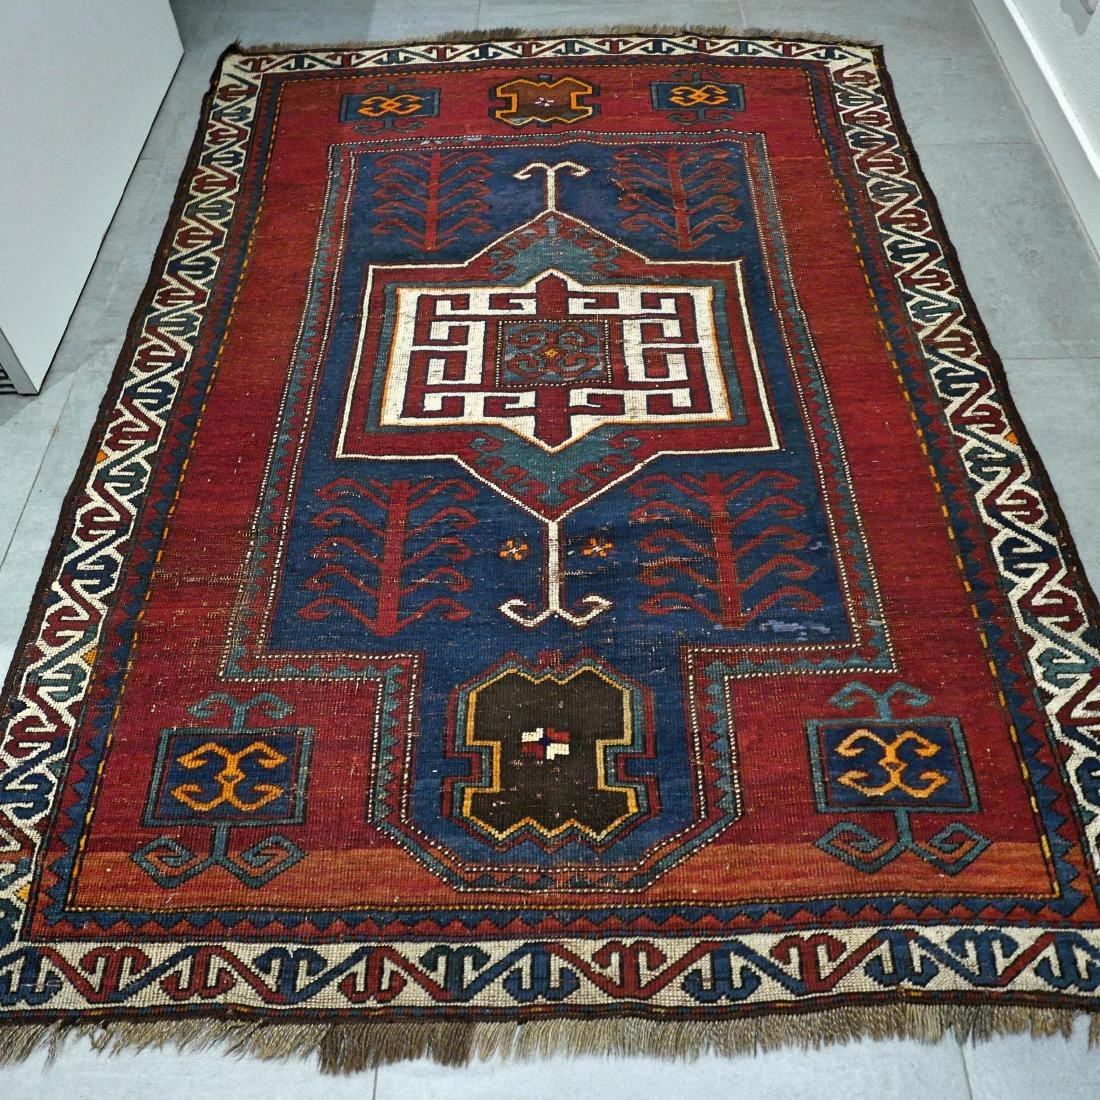 6.6 x 4.6 Caucasian Kazak rug - early 1900s - - 9